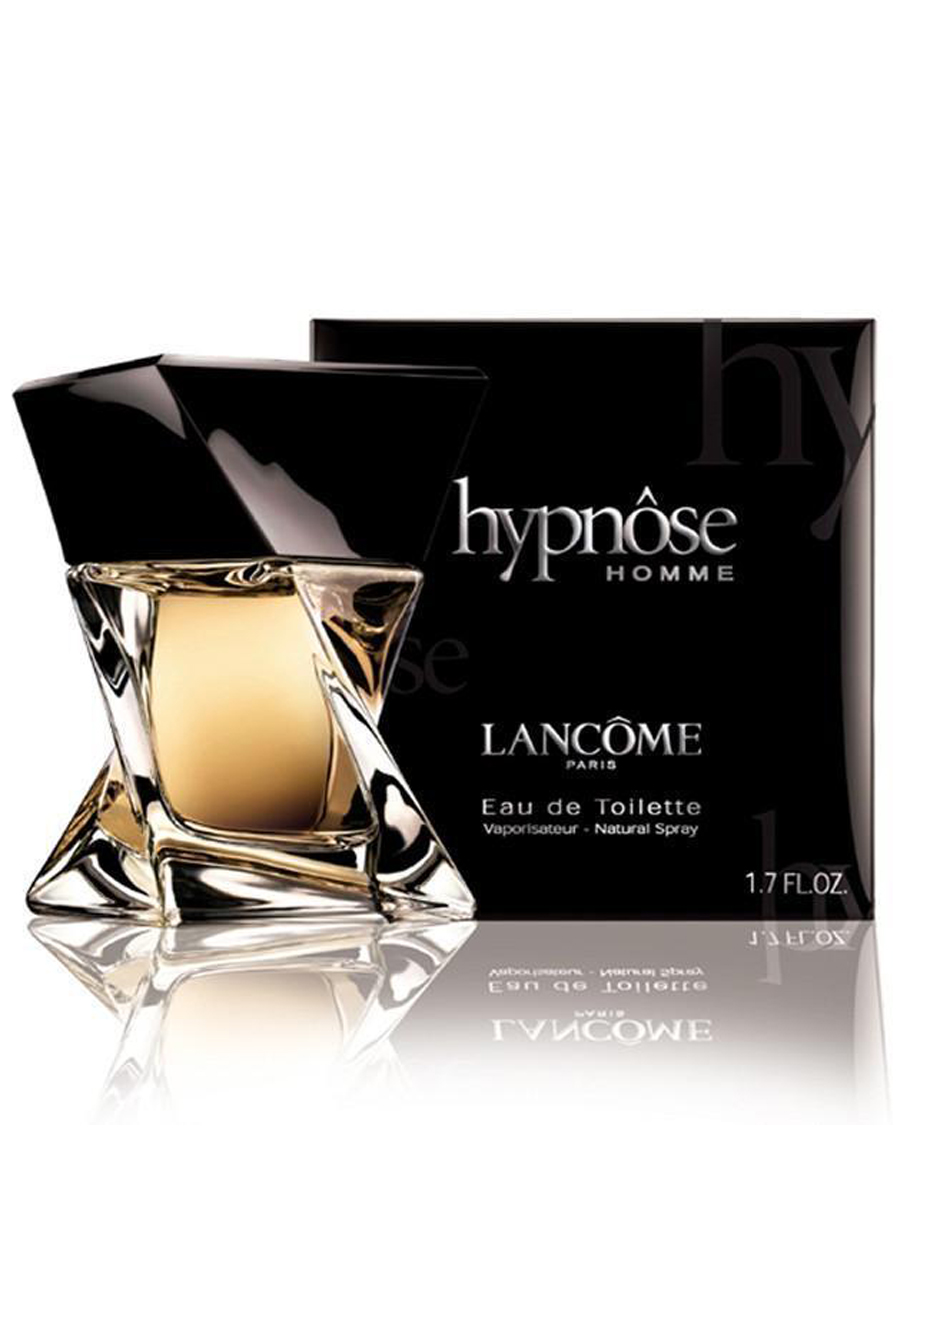 Lancome Lancome 50ml Hypnose Homme Lancome Hypnose Homme Edt Edt 50ml Ibf7g6vYy